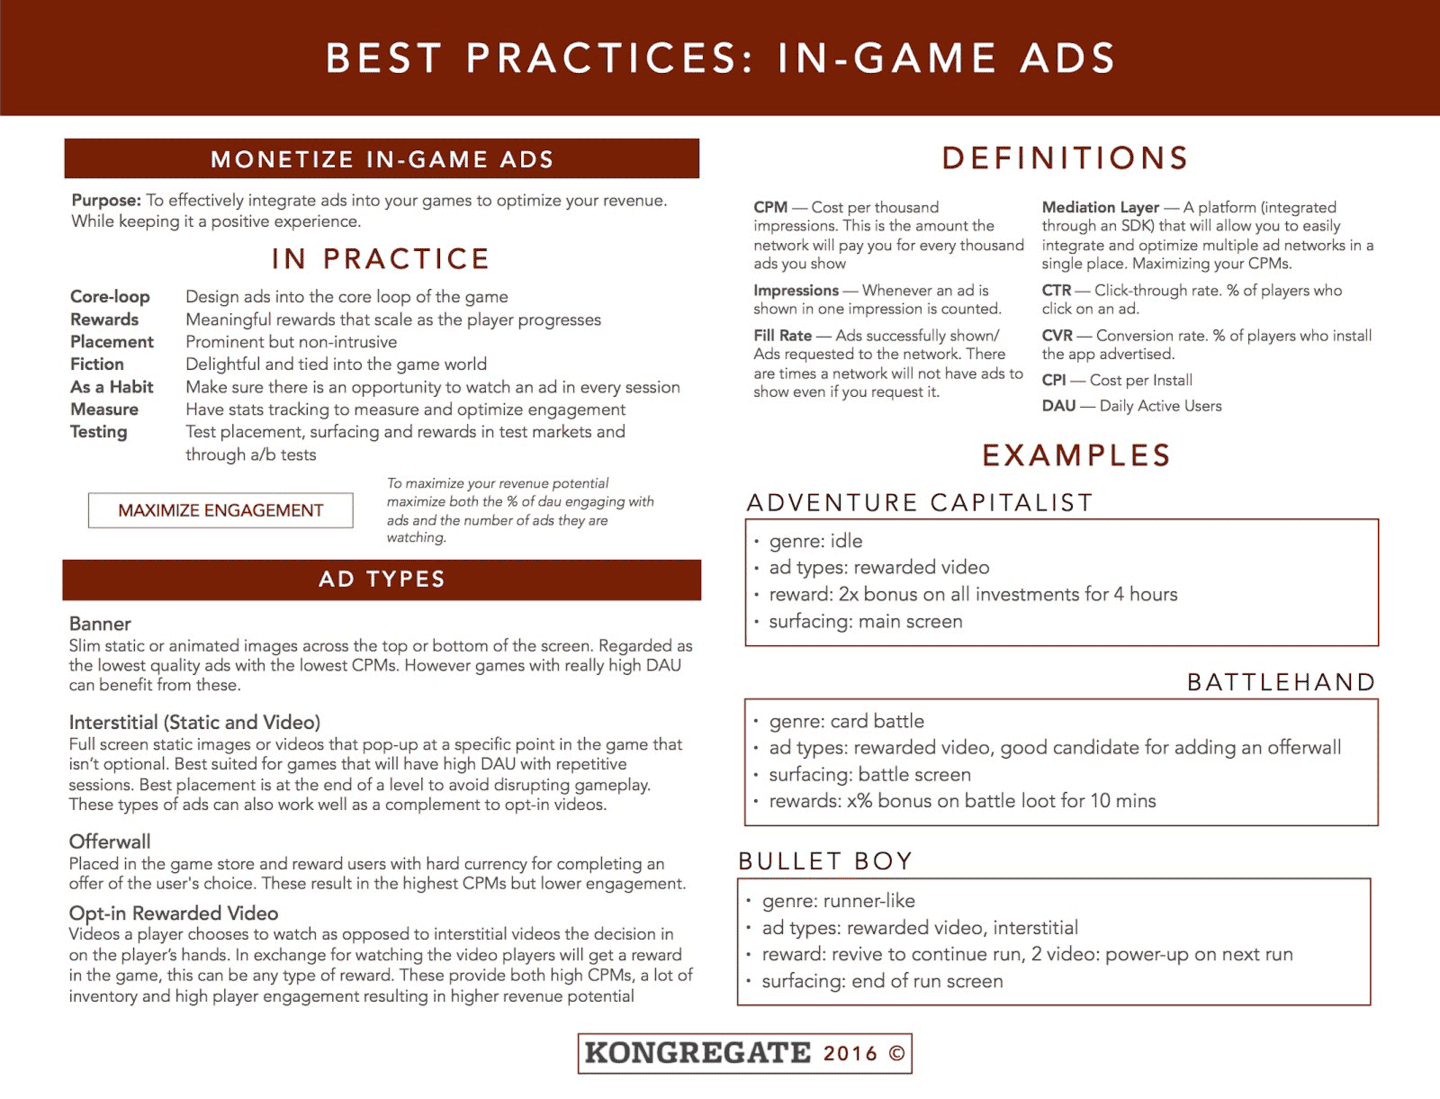 Best Practices: In-Game Ads slide